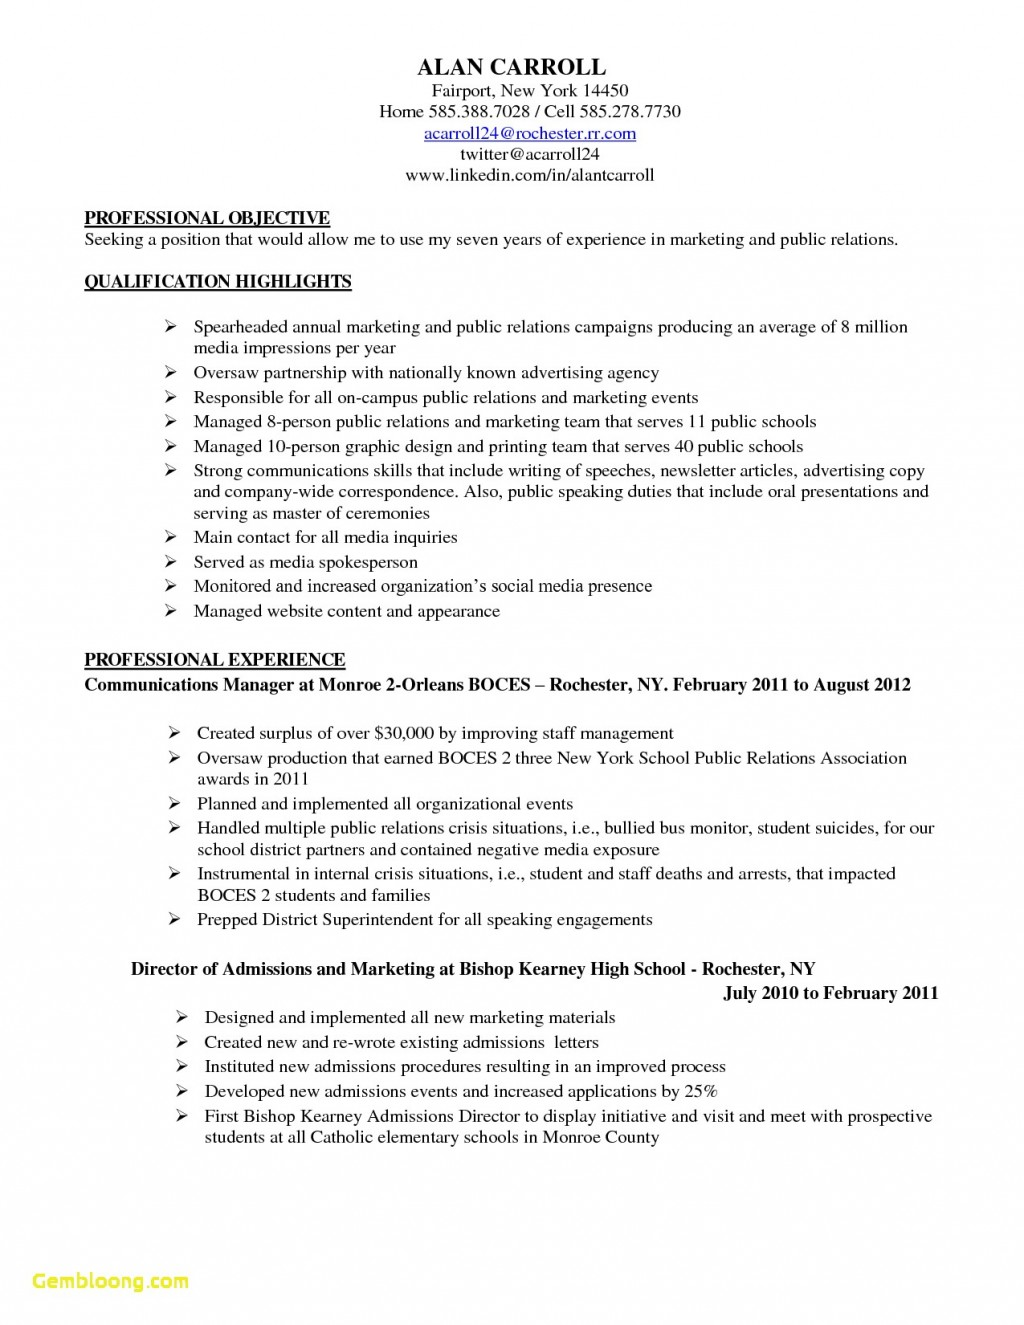 021 Public Relations Resume Templates John Proctor Character Analysis Essay An Paper Of Wondrous Introduction Example For Nhs Writing Prompts Large